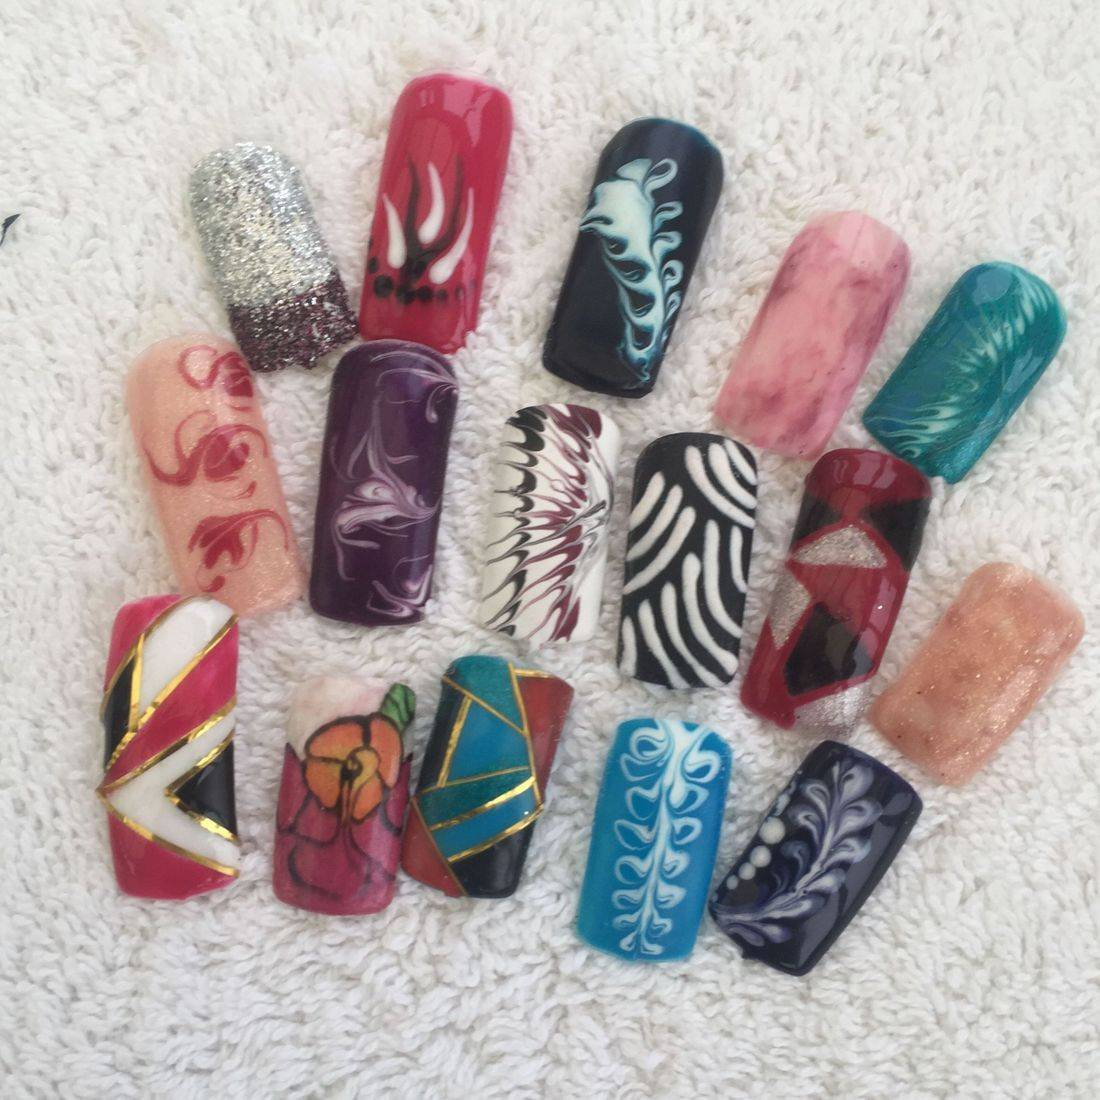 Nails done on Nail Art Course